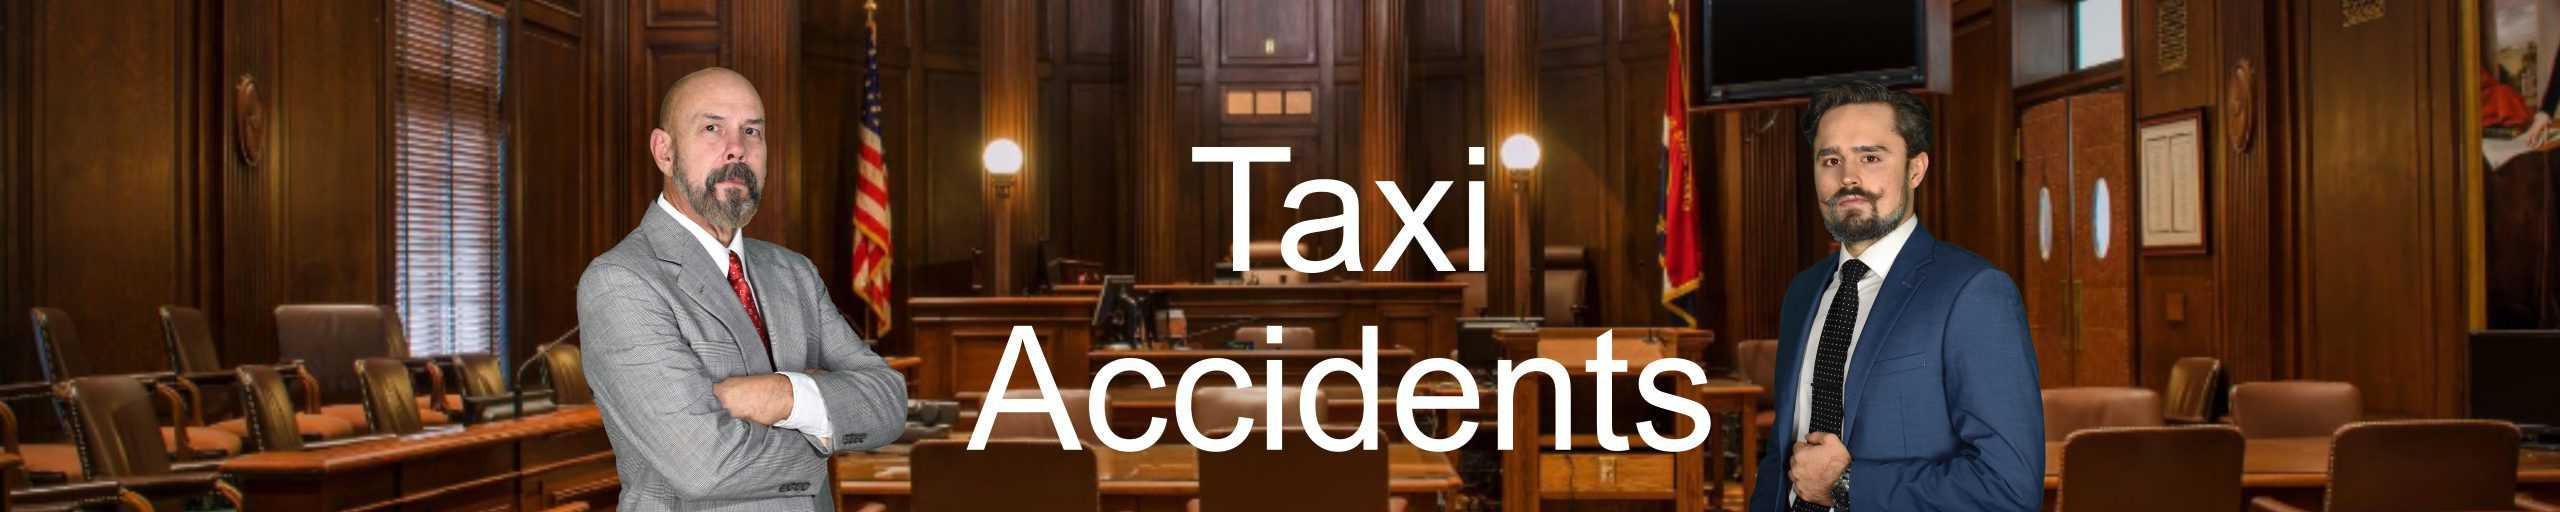 Taxi-Accidents-Personal-Injury-Attorney-Lawyer-Hurt-Broken-Rear-End-Money-Settlement-Hospital-ER-Damage-Insurance-Company